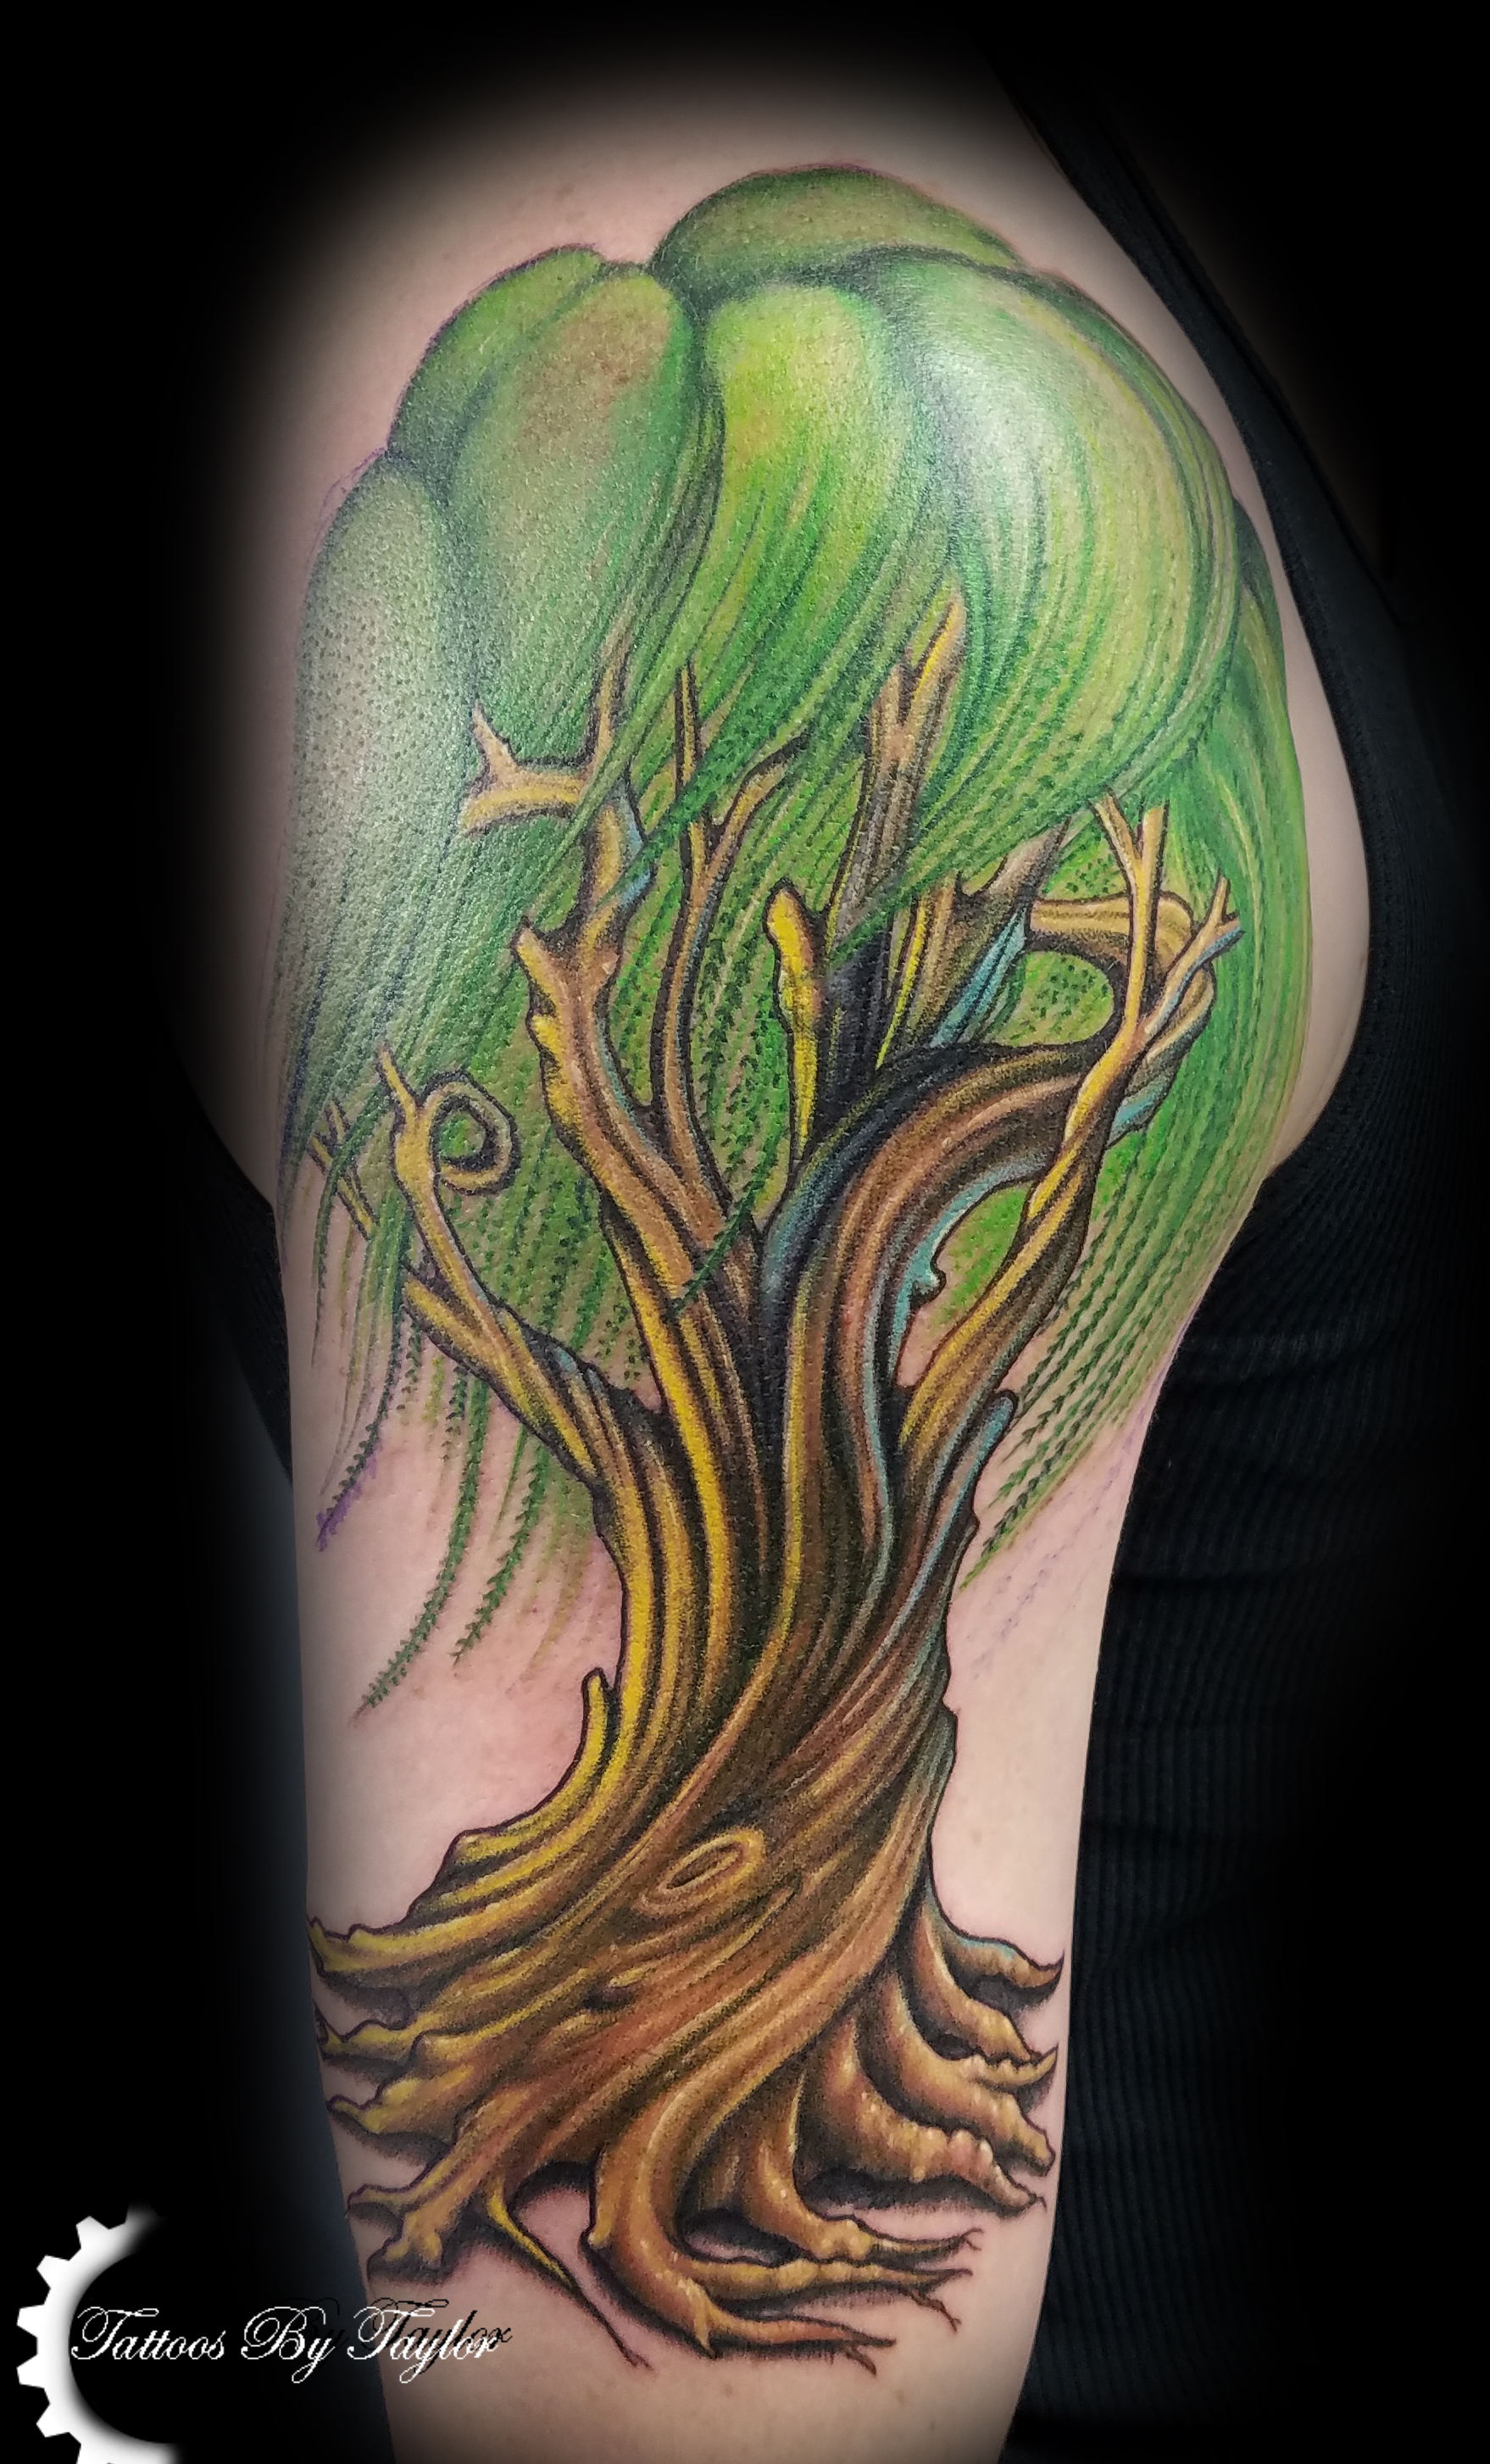 Taylor kuhlman certified artist for Willow tree tattoo